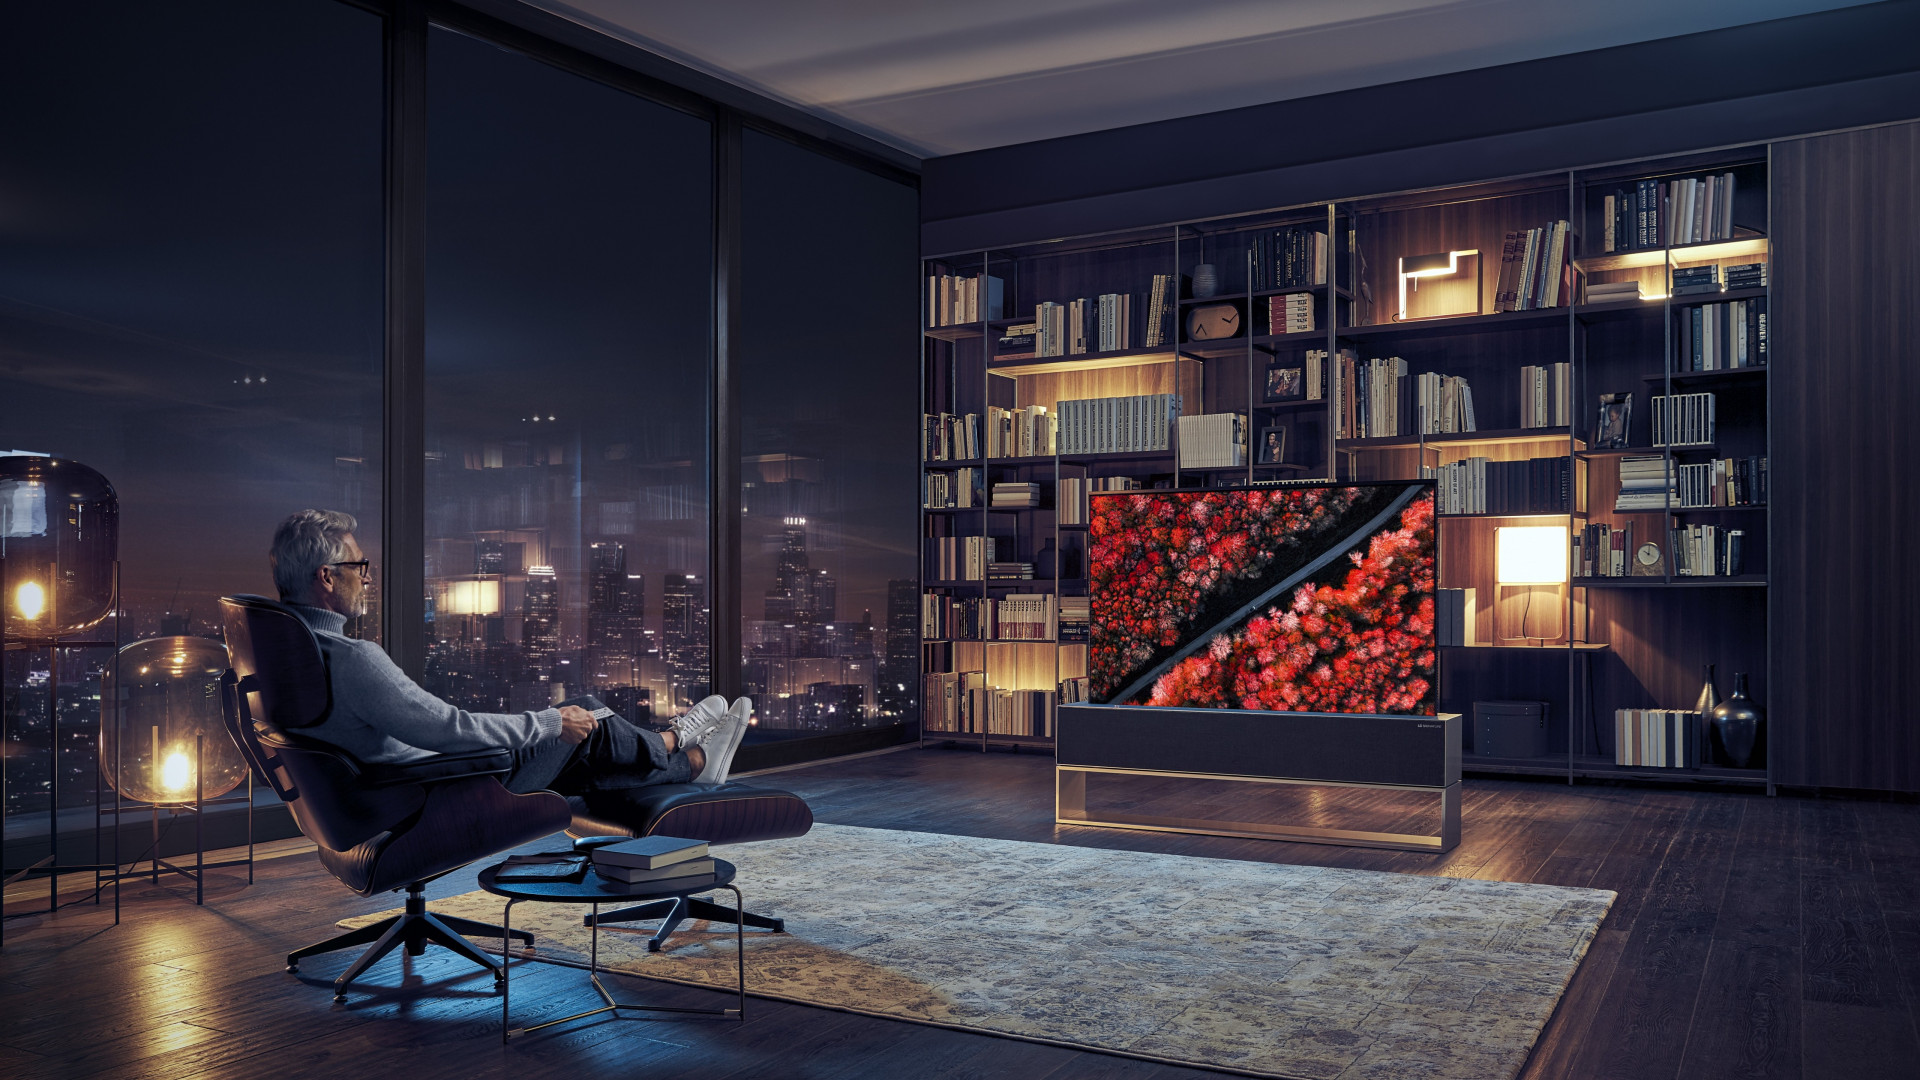 LG Signature OLED TV R wallpaper 1920x1080